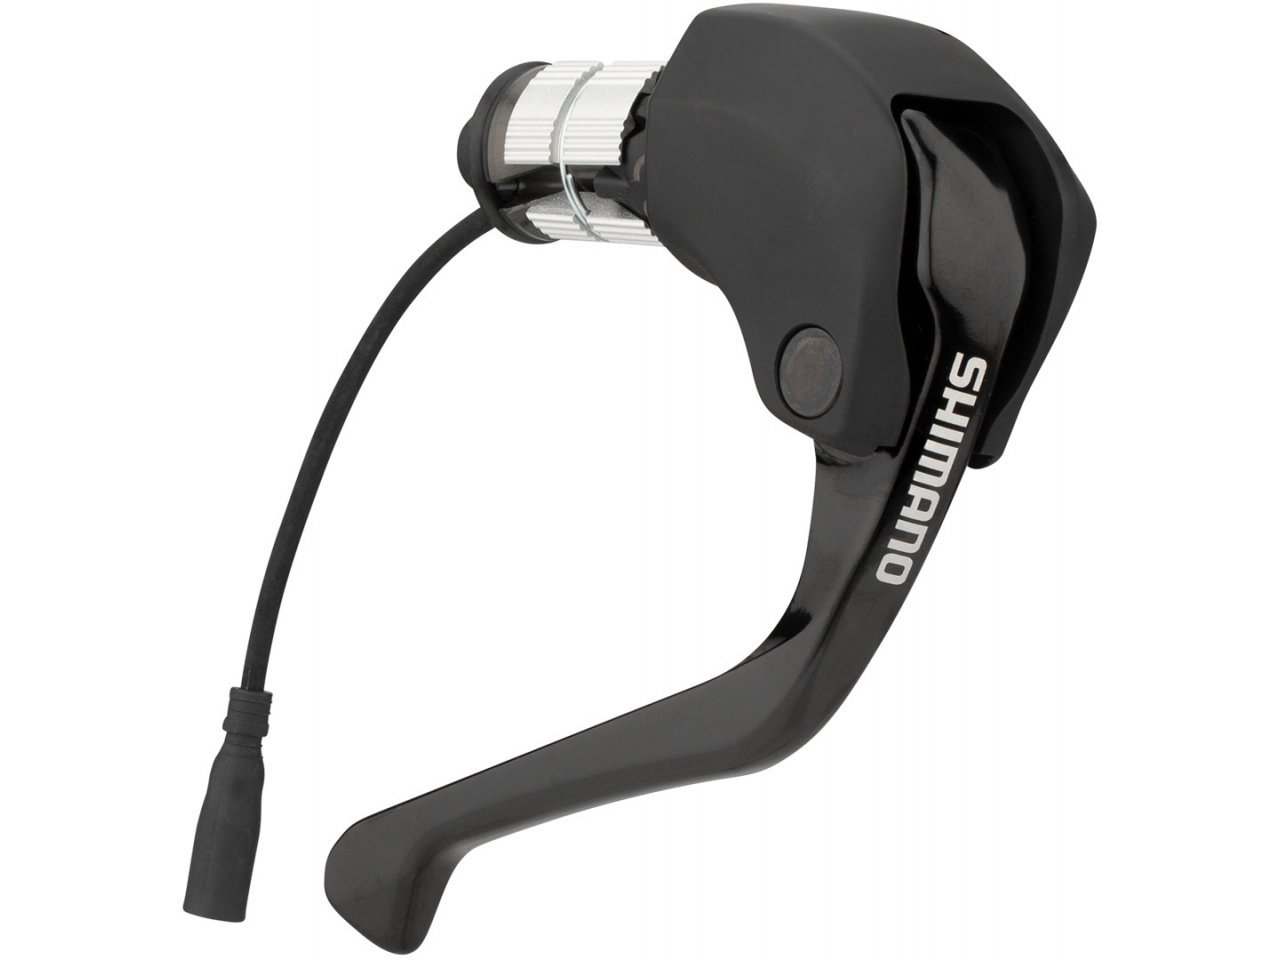 Shimano Ultegra Di2 ST-6871 Dual Control 11s Bar-End Shifter REAR//RIGHT ONLY NEW